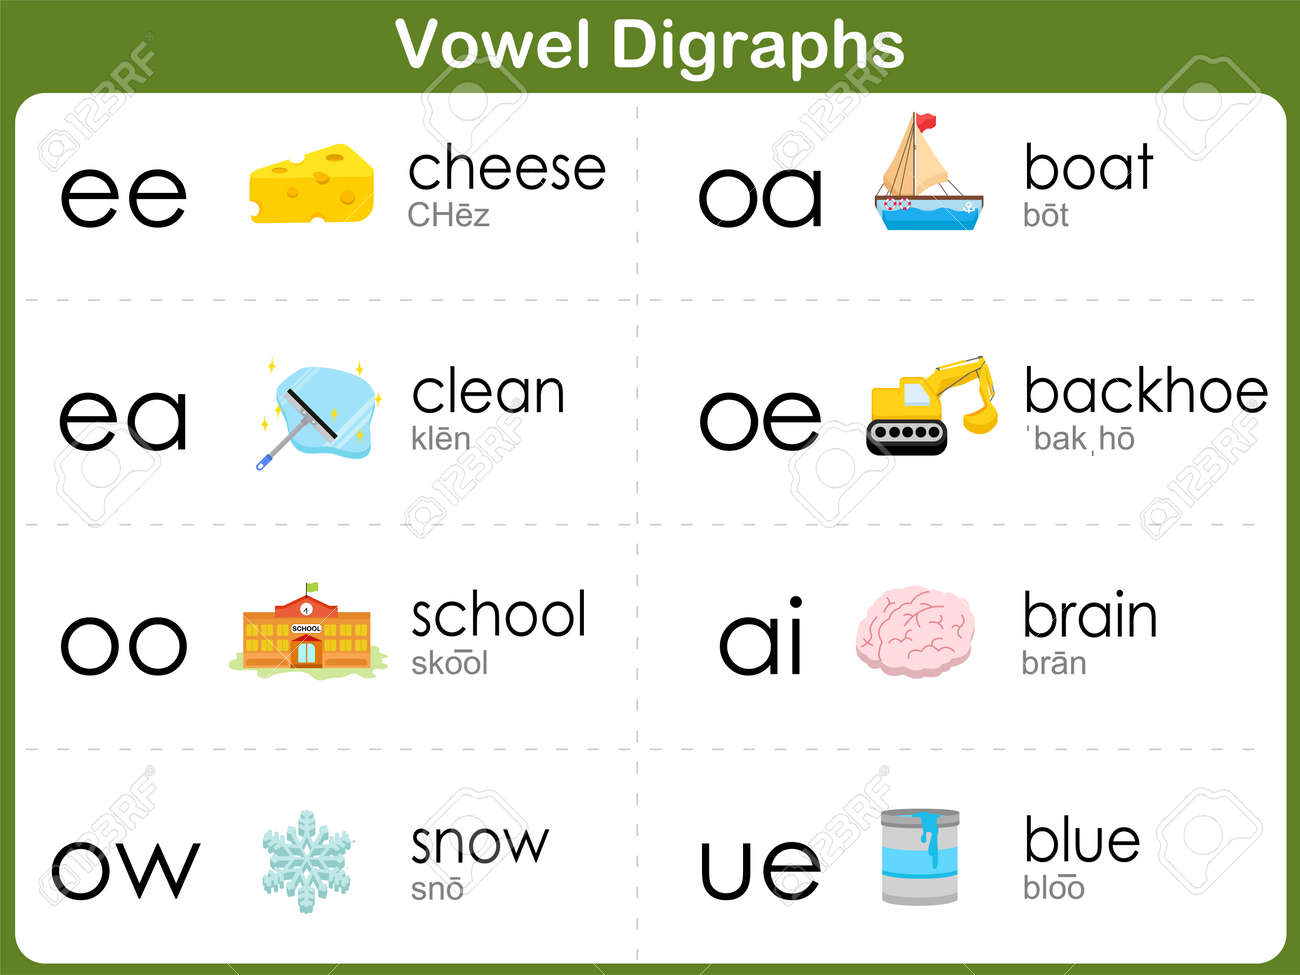 Uncategorized Digraph Worksheets free worksheet digraph worksheets paydayloansusaprh com ch workbook site consonant digraphs for kids stock vector image 45519473